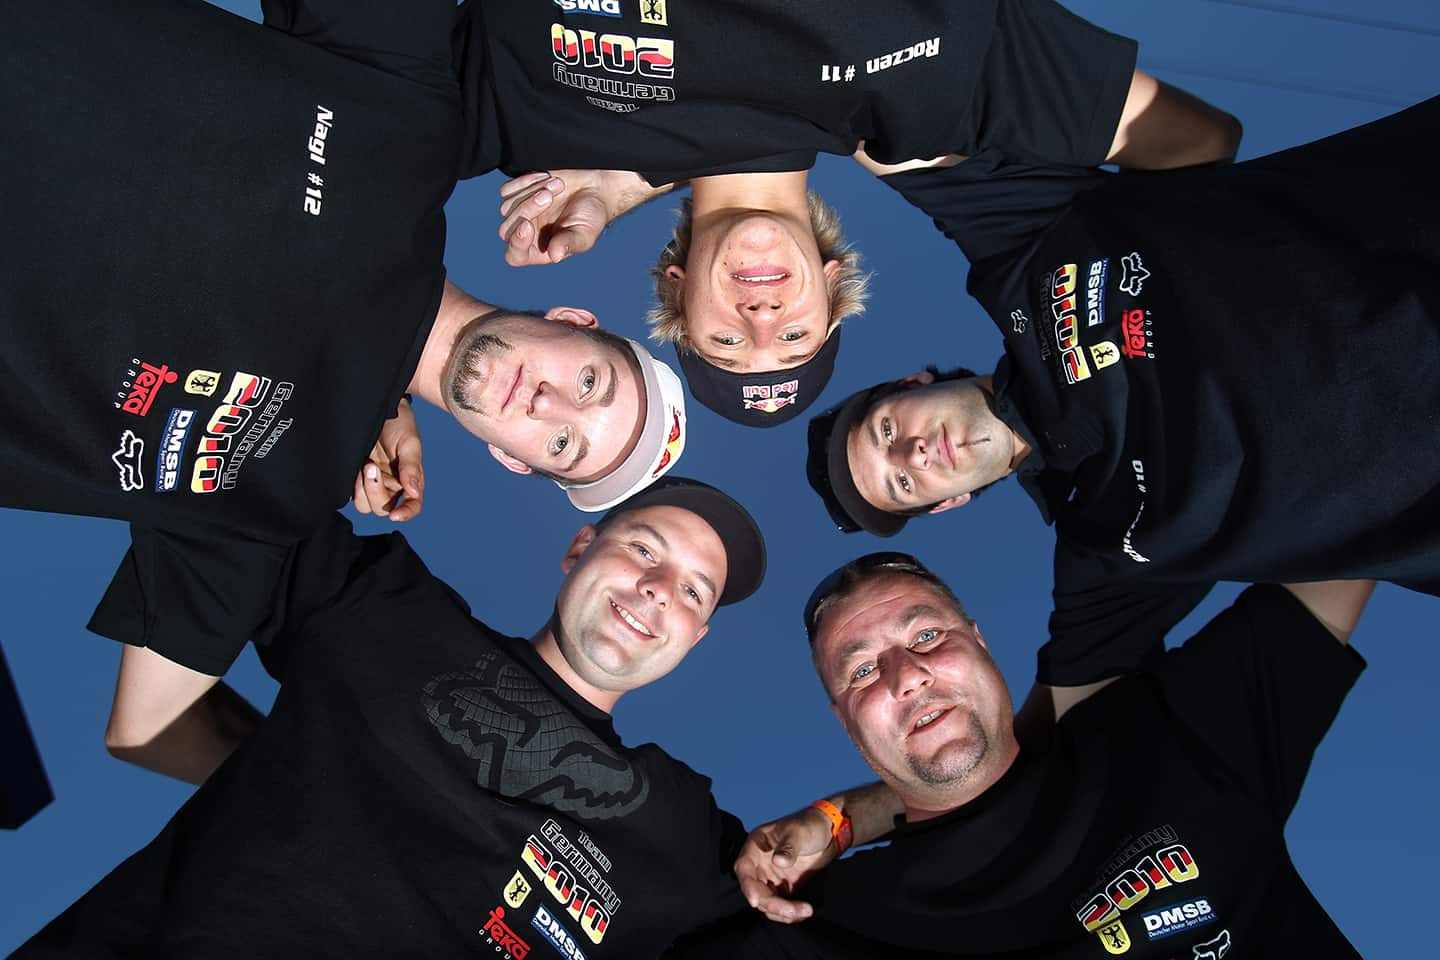 Motocoss of Nations 2010 in Lakewood, Colorado - Team Germany